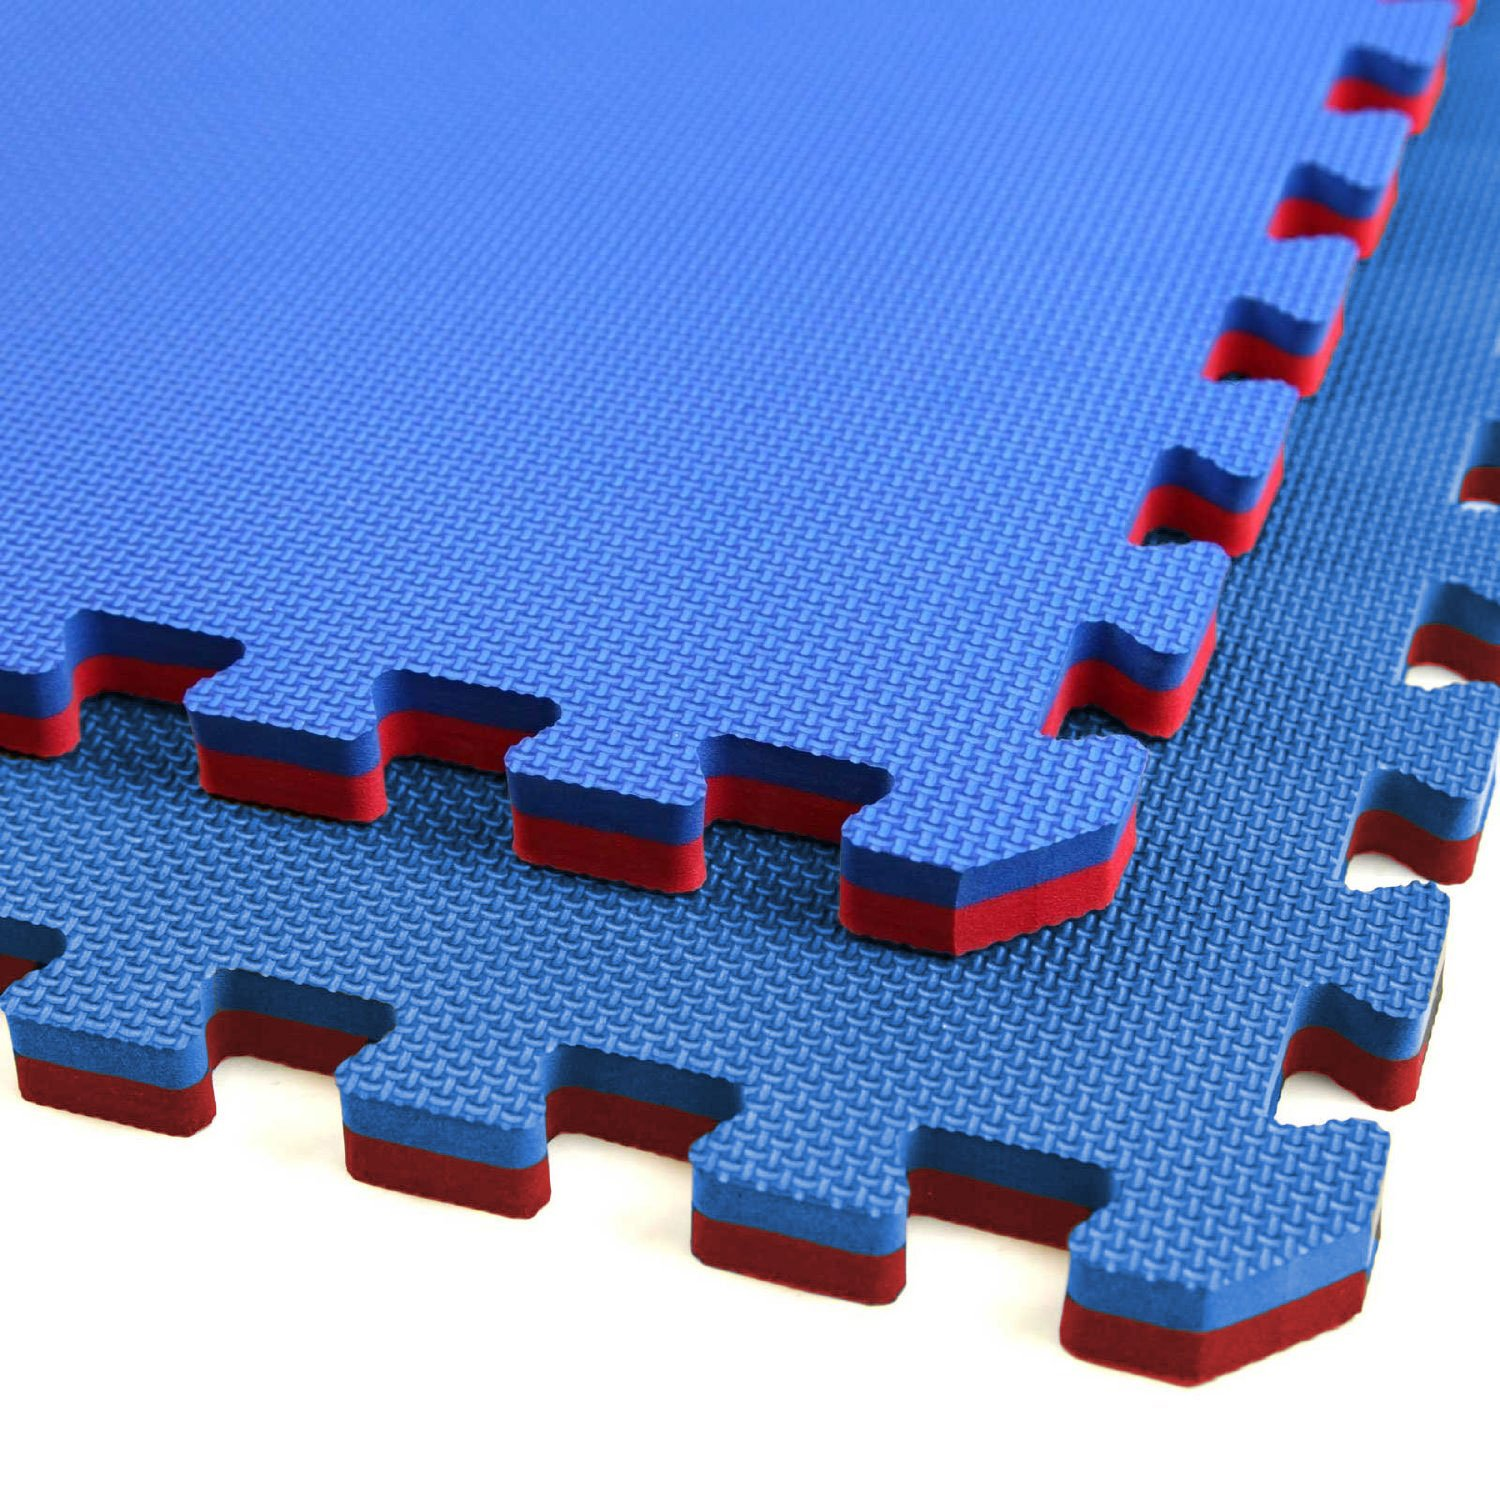 Jumbo Soft Interlocking Foam Tiles